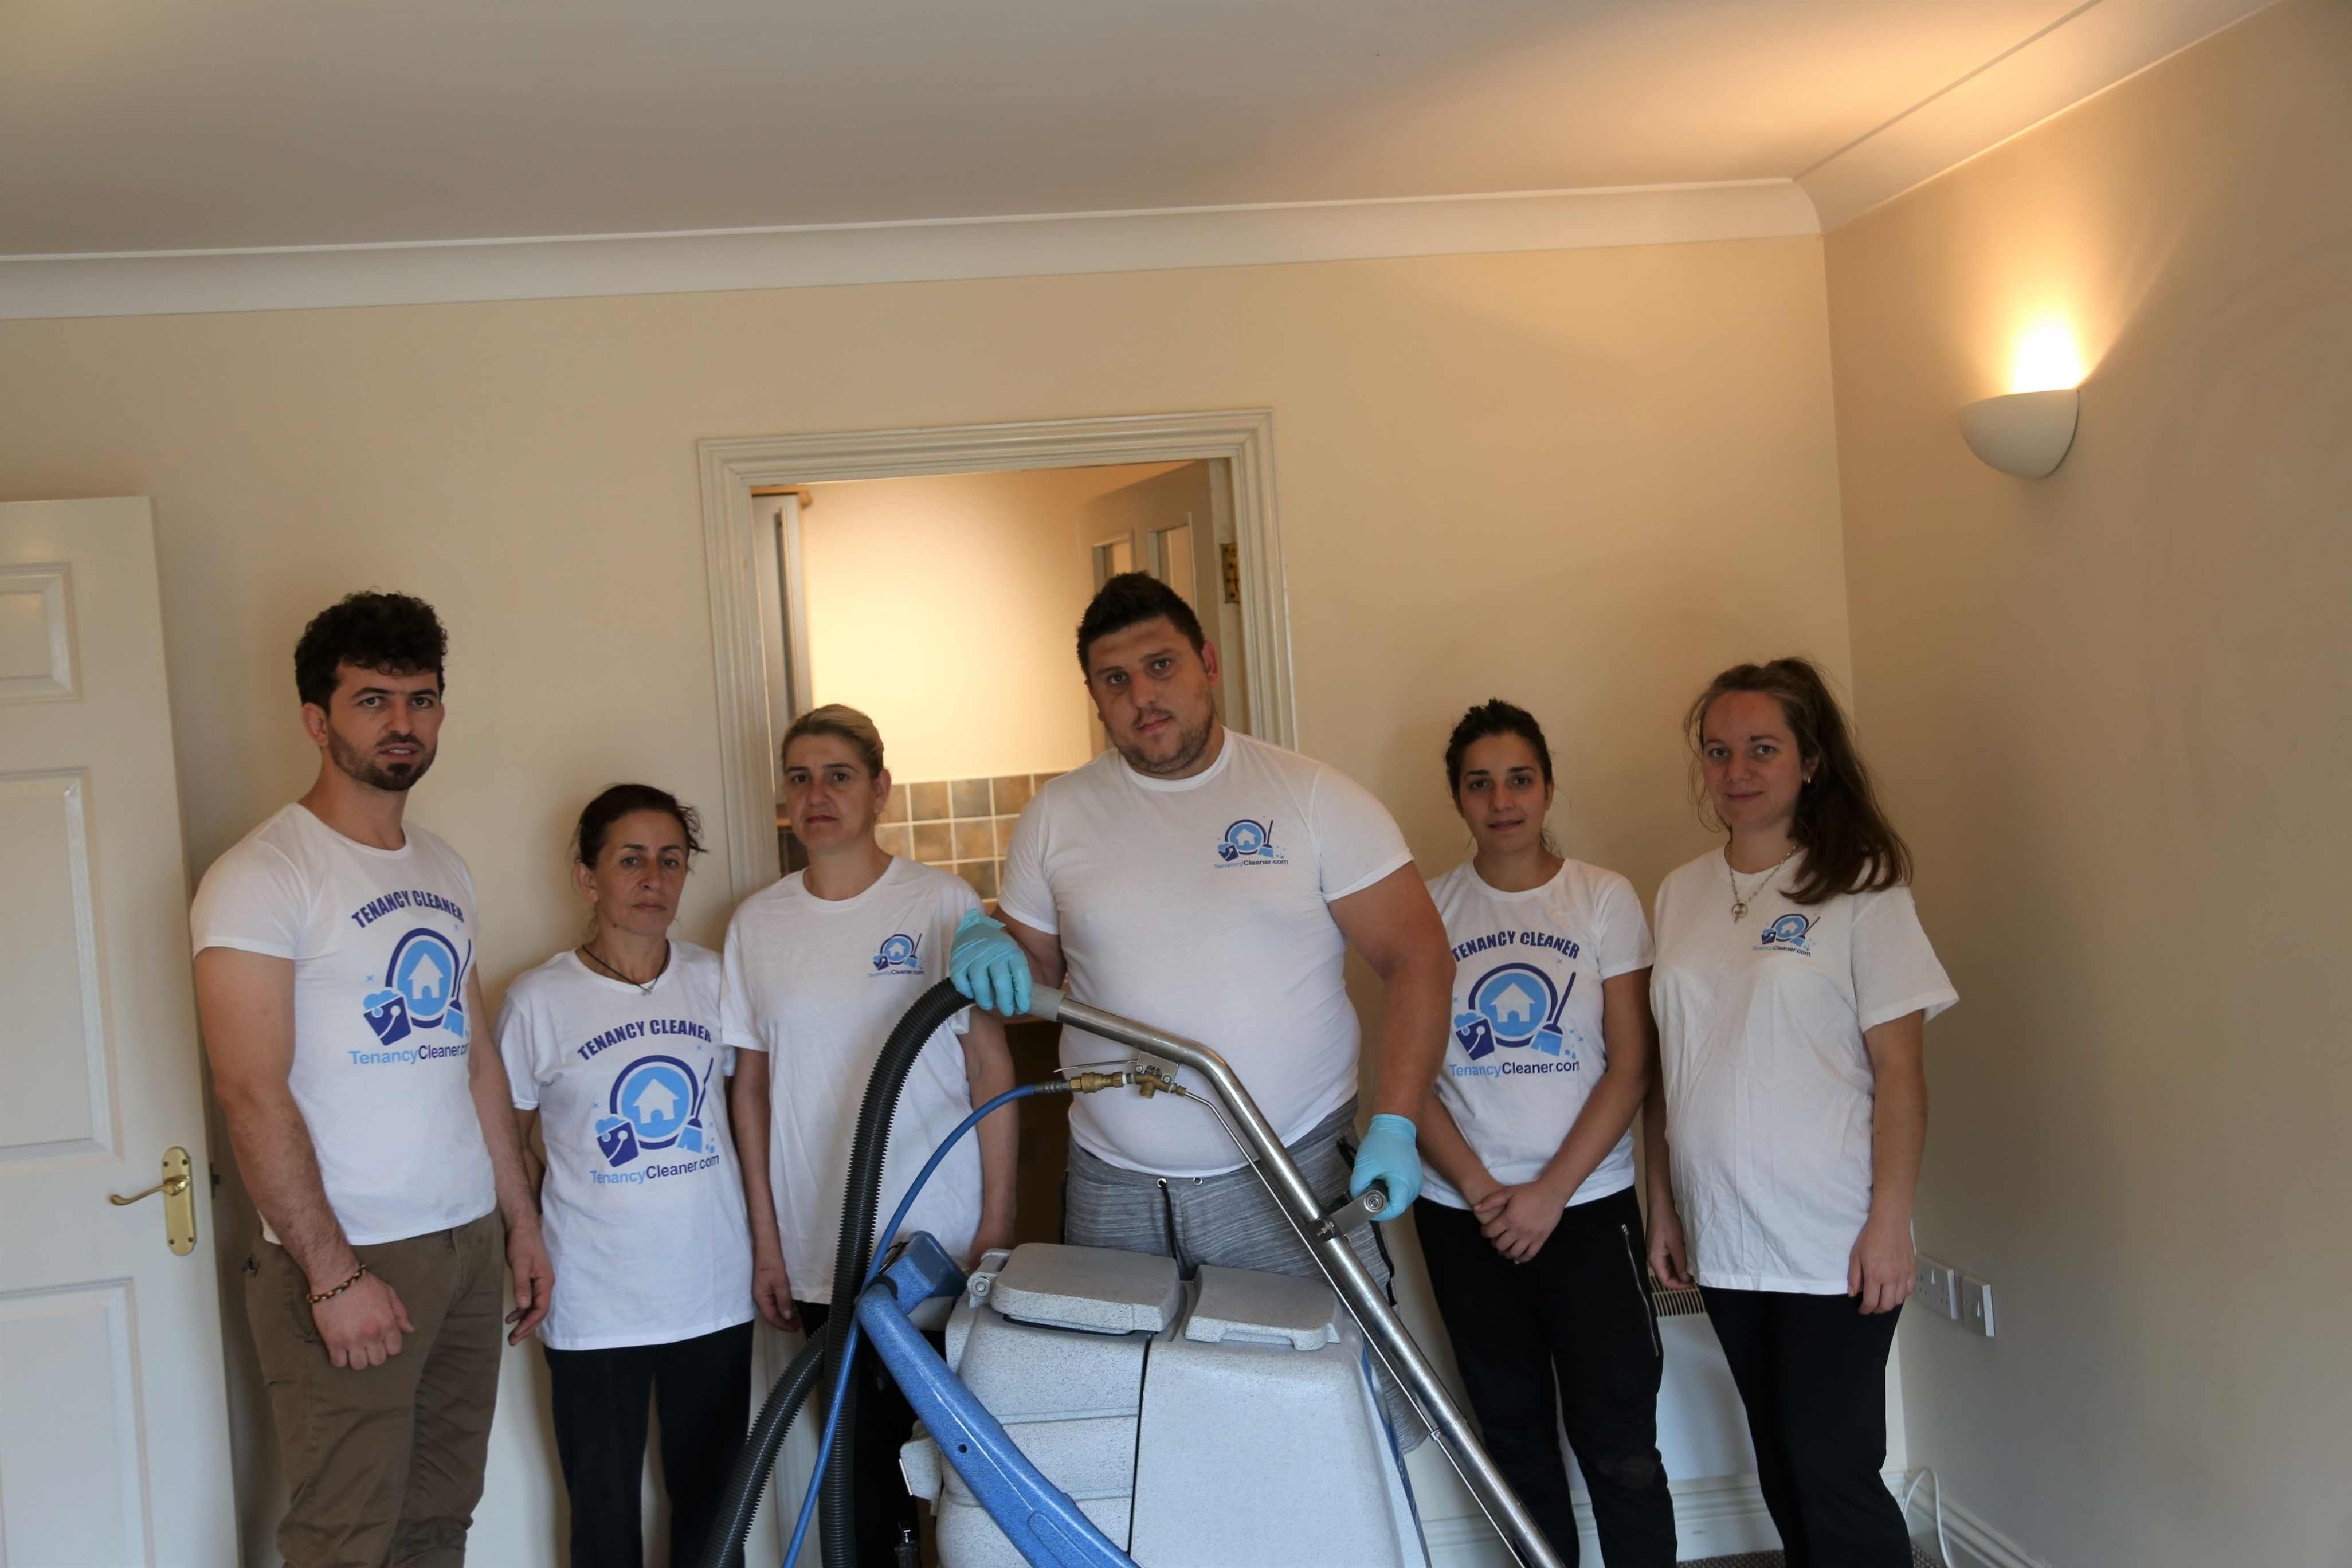 end of tenancy cleaning London team